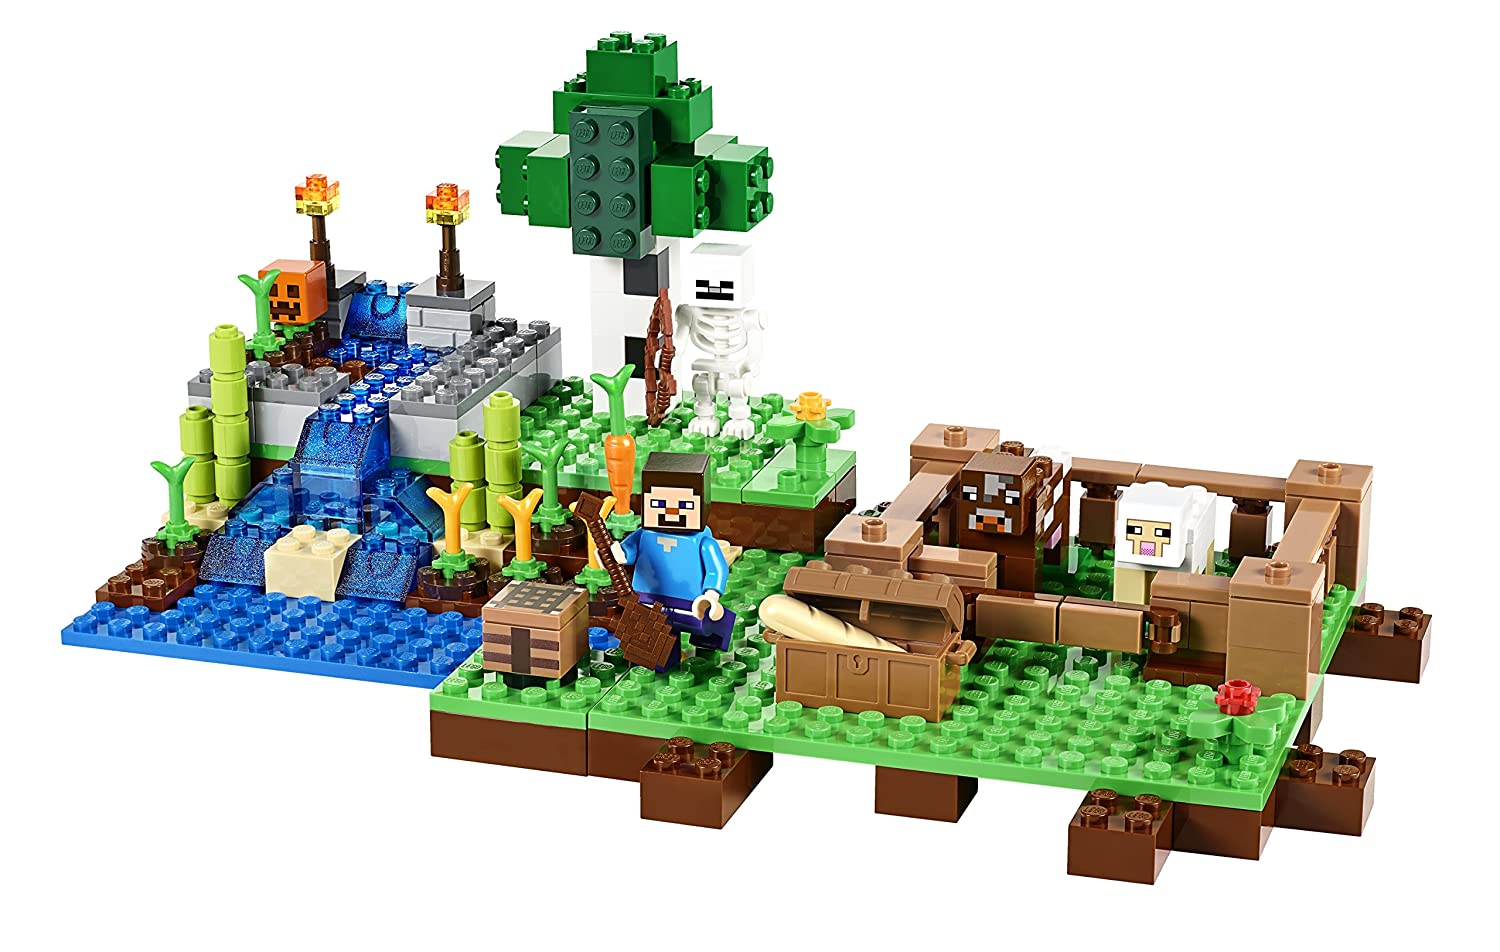 LEGO Minecraft: The Farm